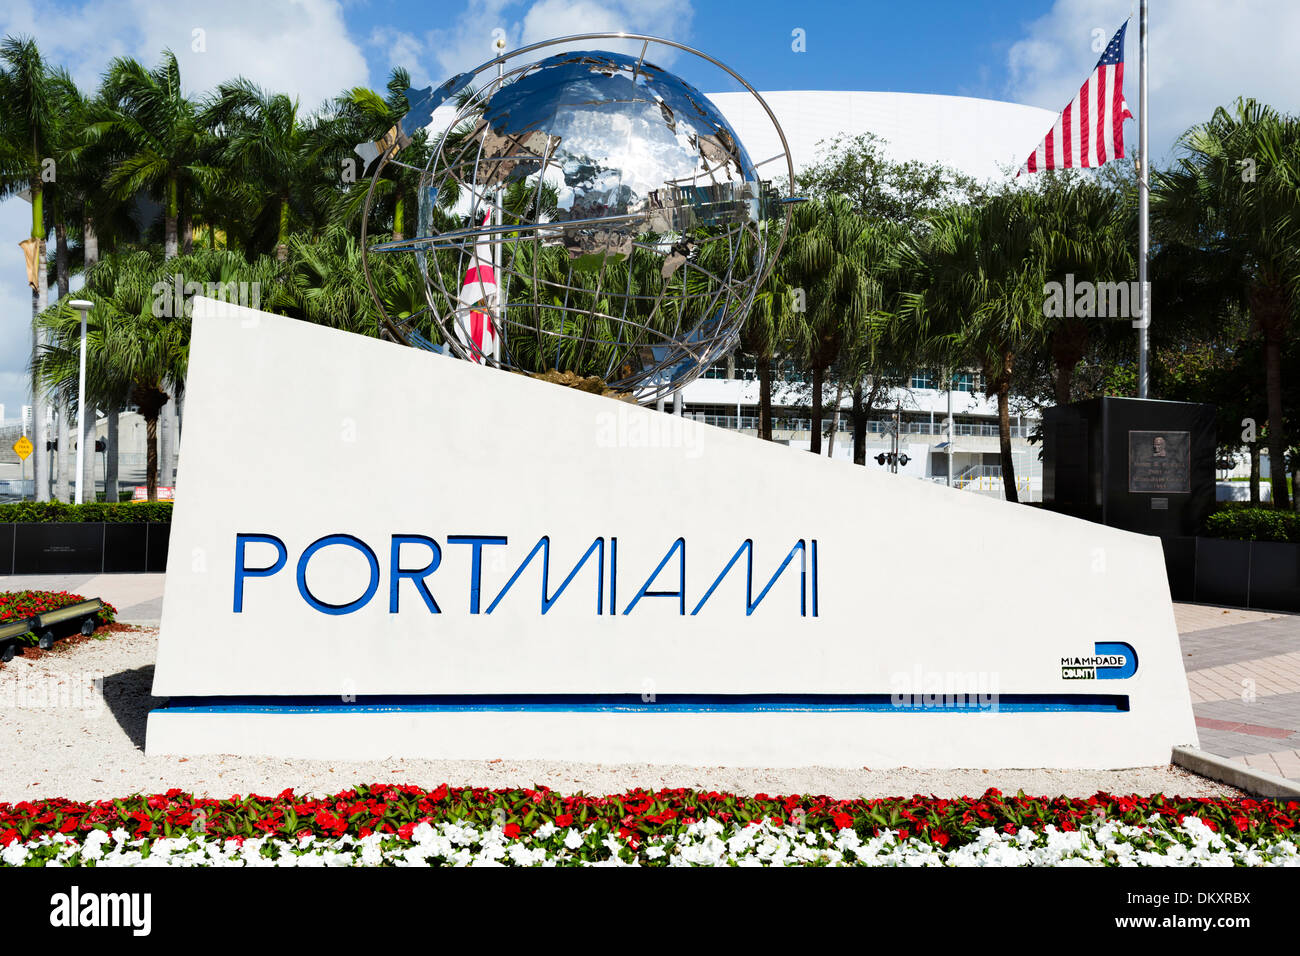 Sign at the entrance to the Port of Miami, Miami, Florida, USA - Stock Image